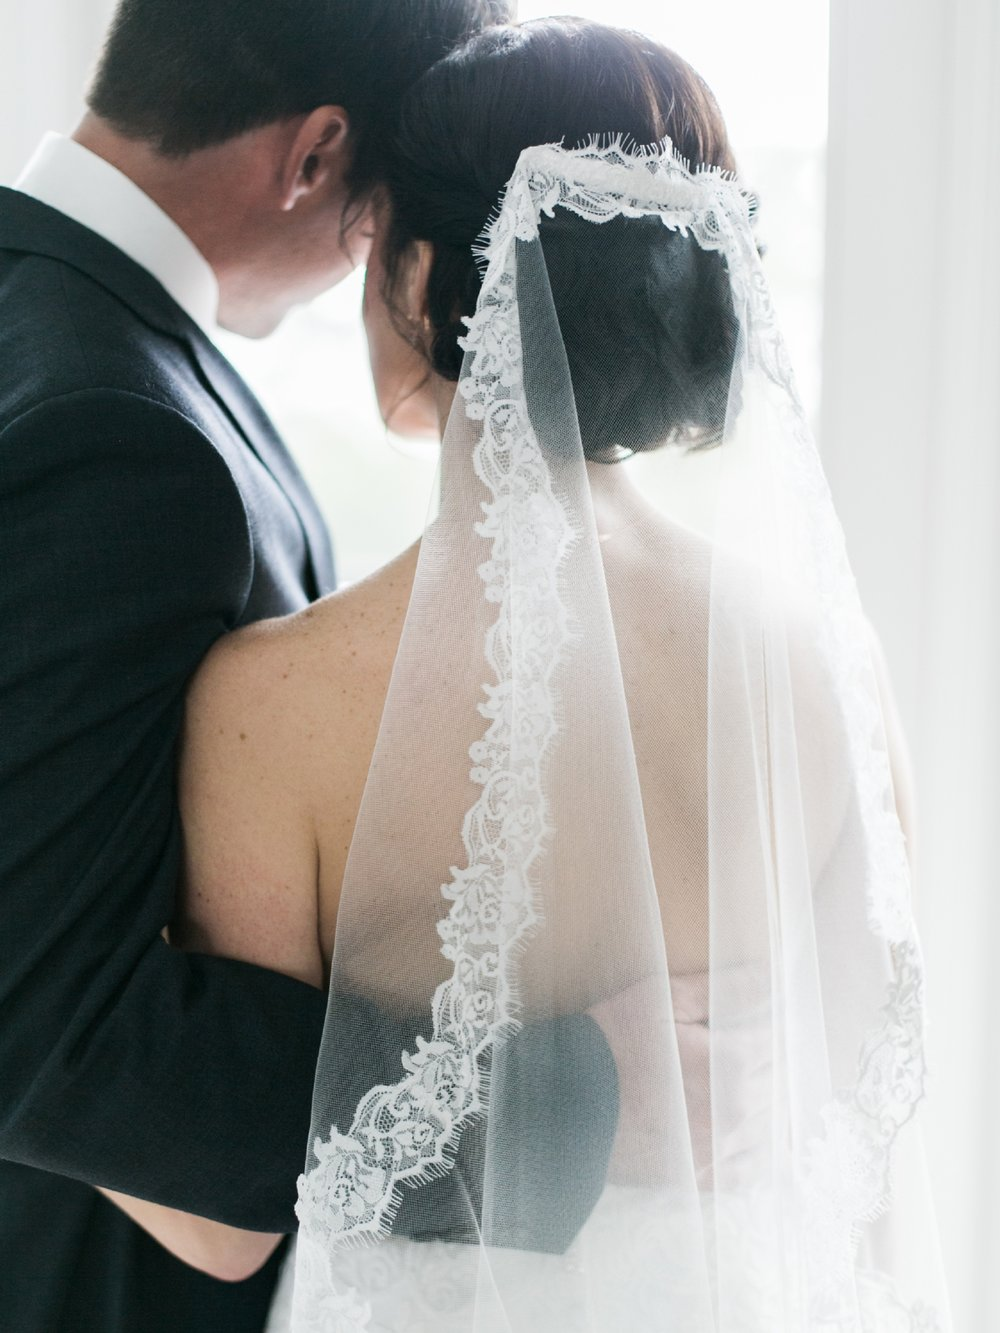 Wedding Veil With Lace Trim | West Palm Beach Wedding Photographer  Shannon Griffin_0040.jpg